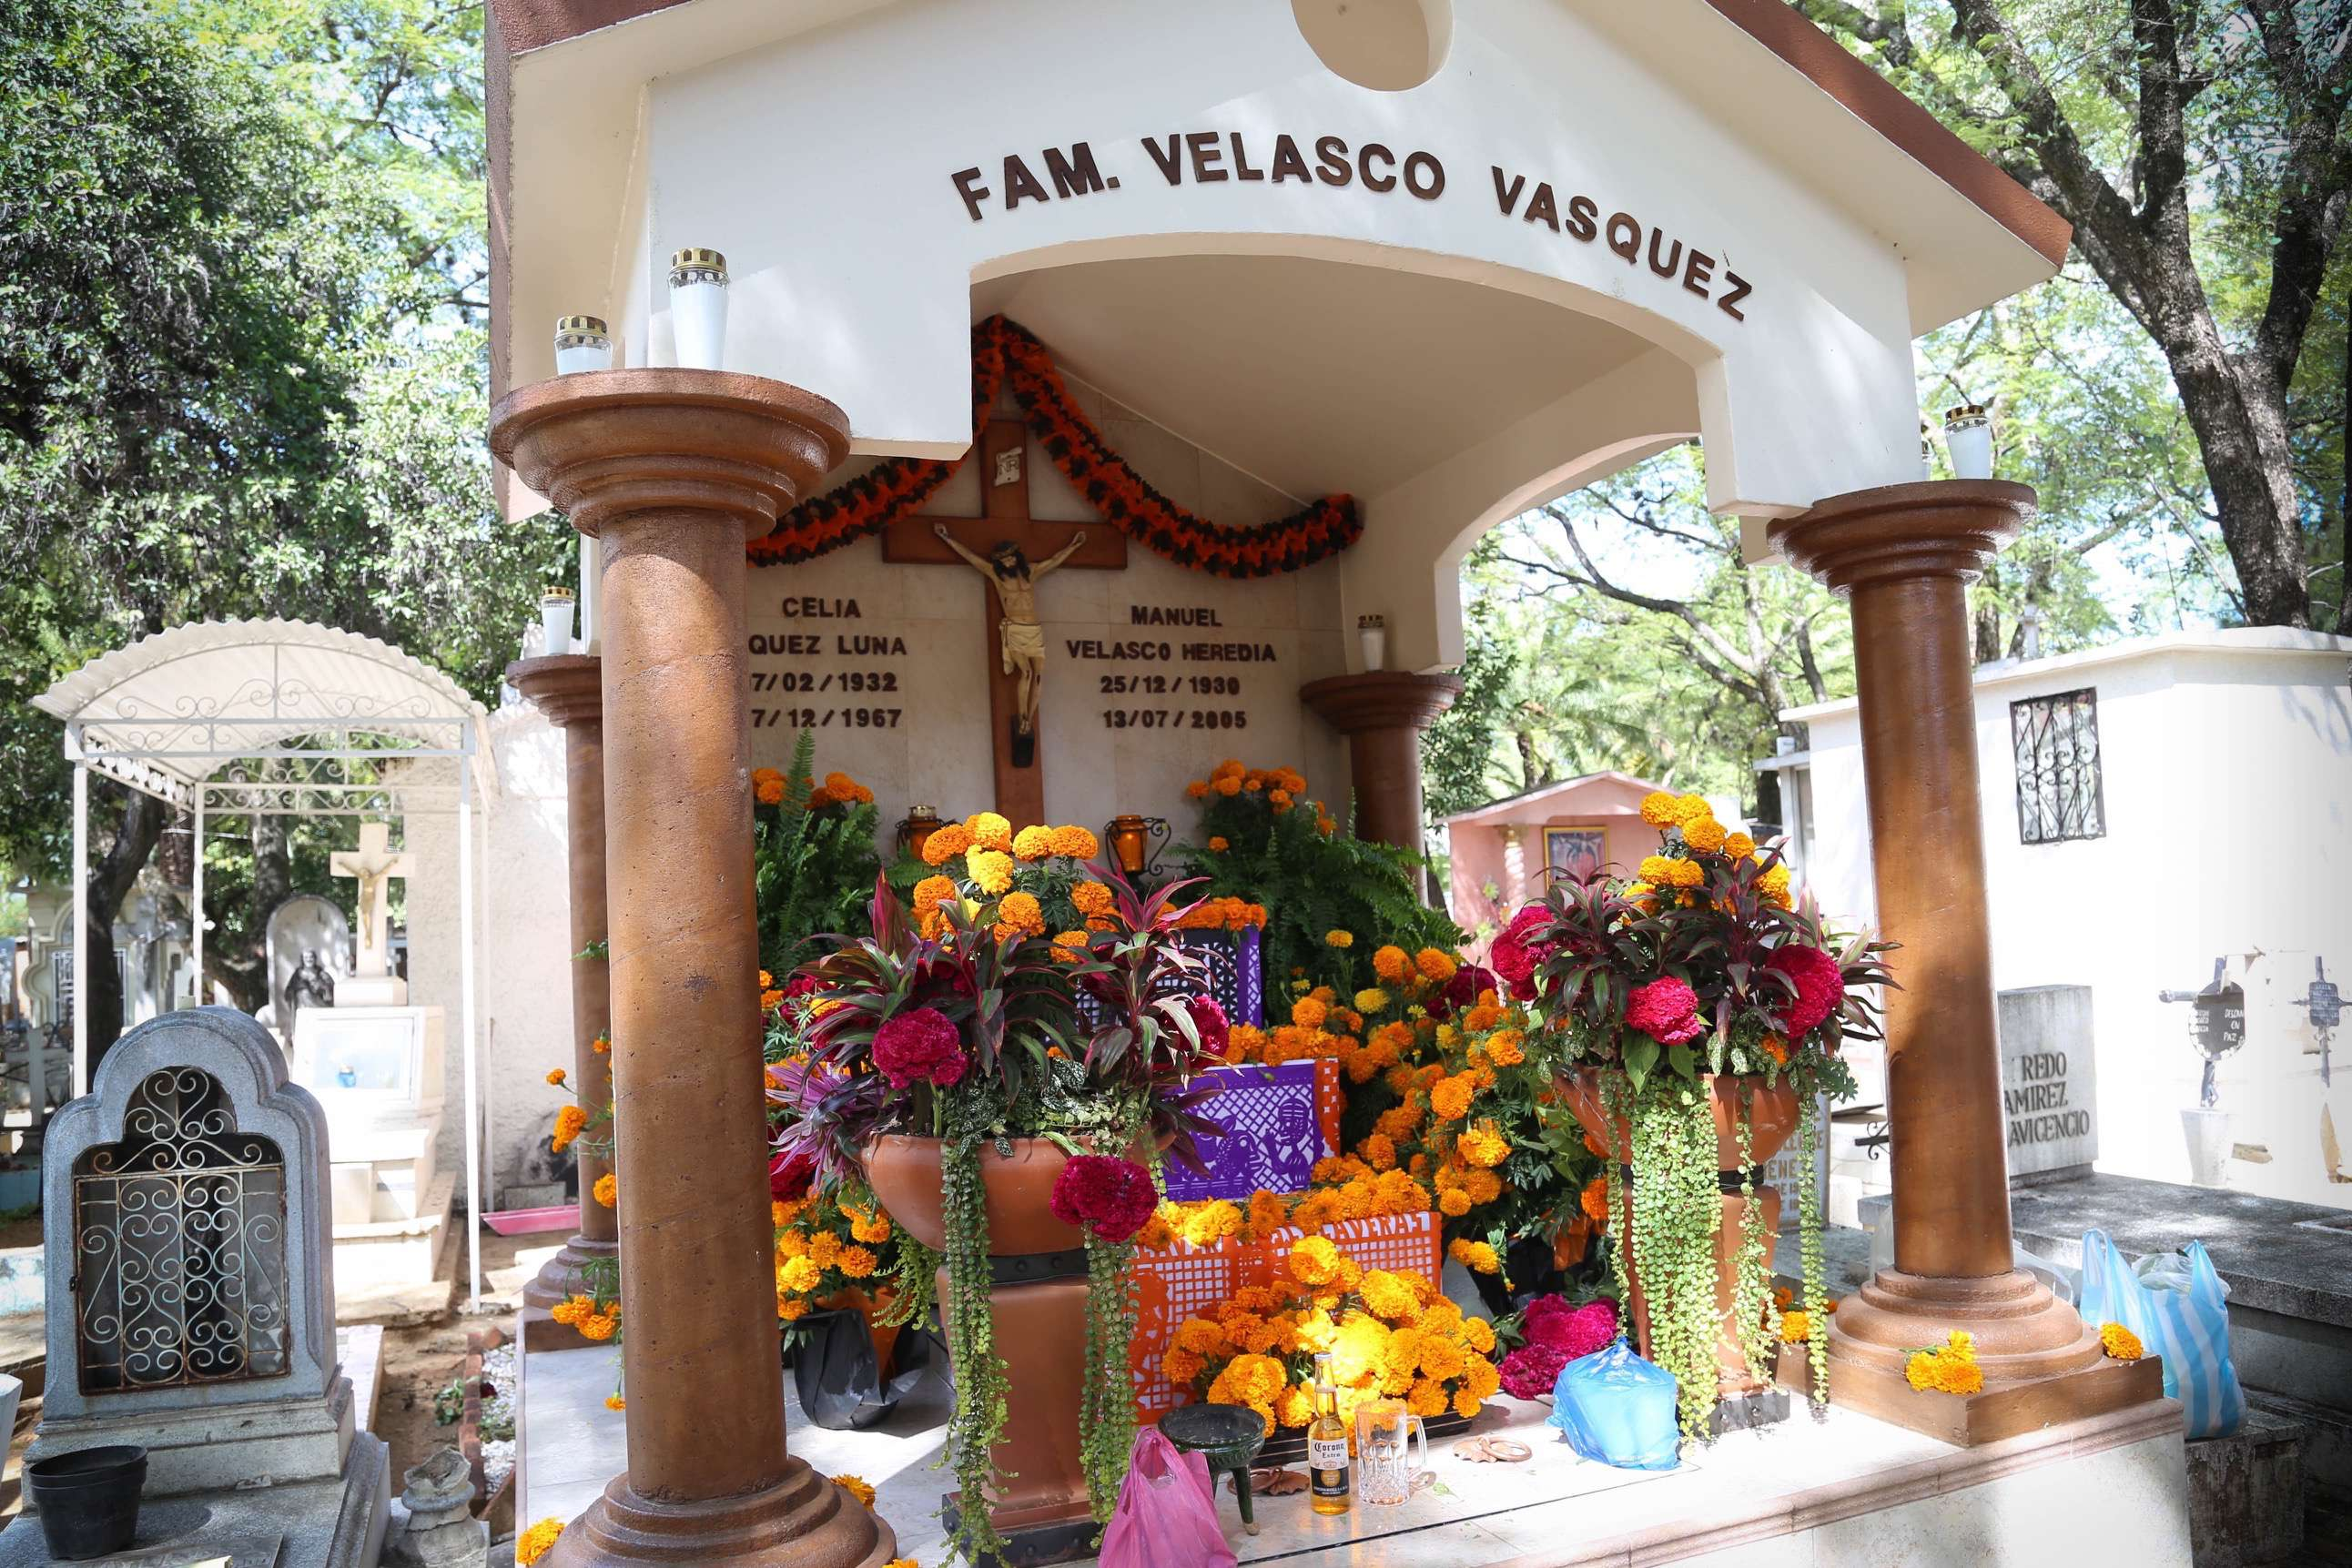 Family pride and success are evident at this memorial in Oaxaca city. The patriarch was a successful business man who loved his wife and children.